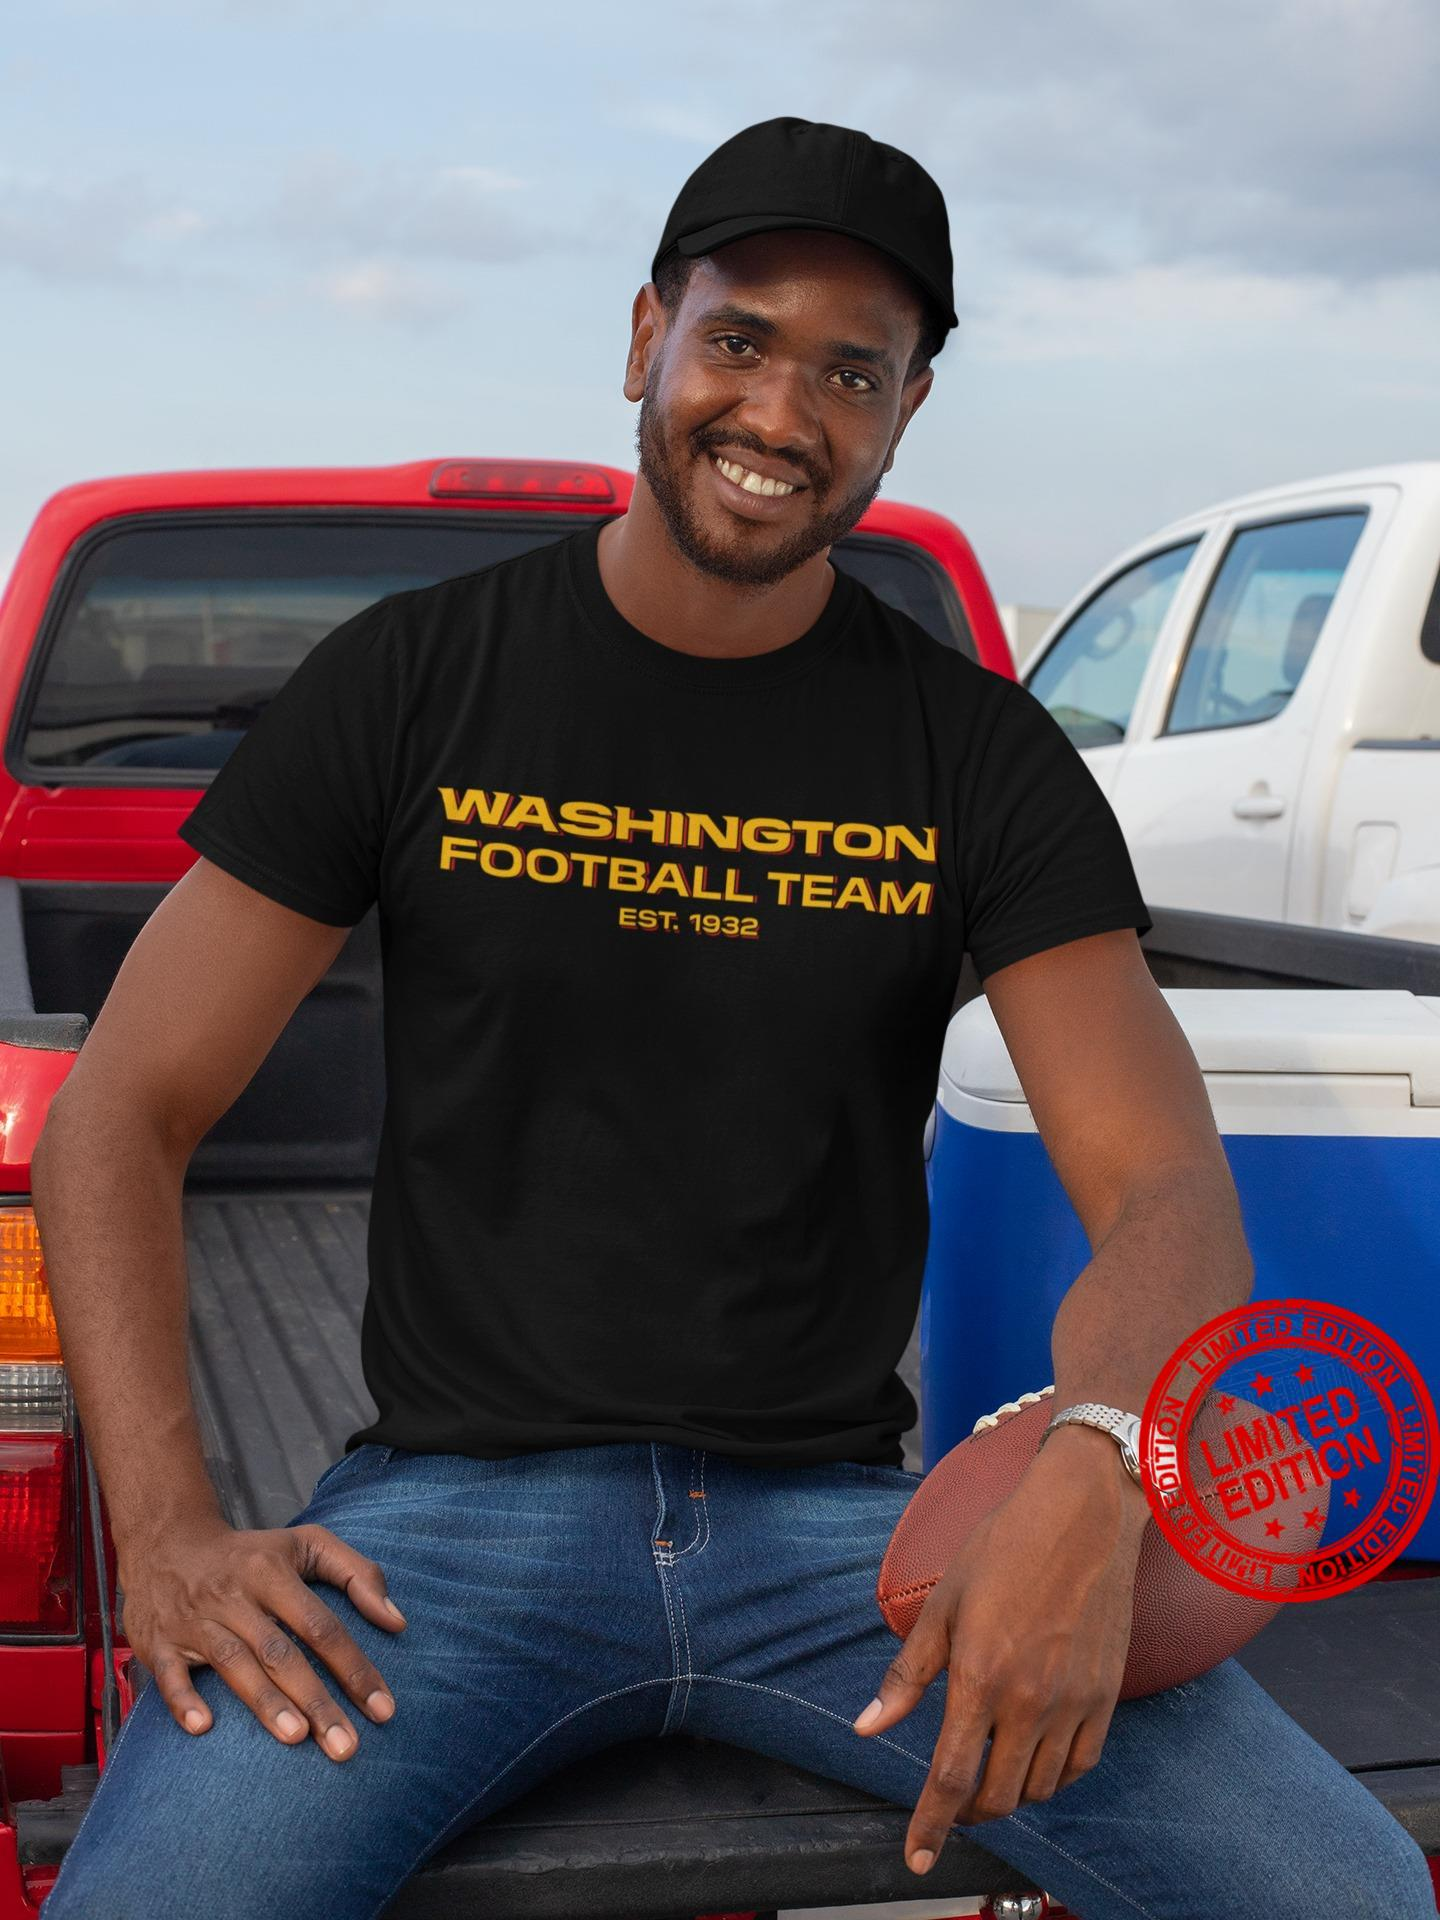 Washington Football Team Est 1932 Shirt